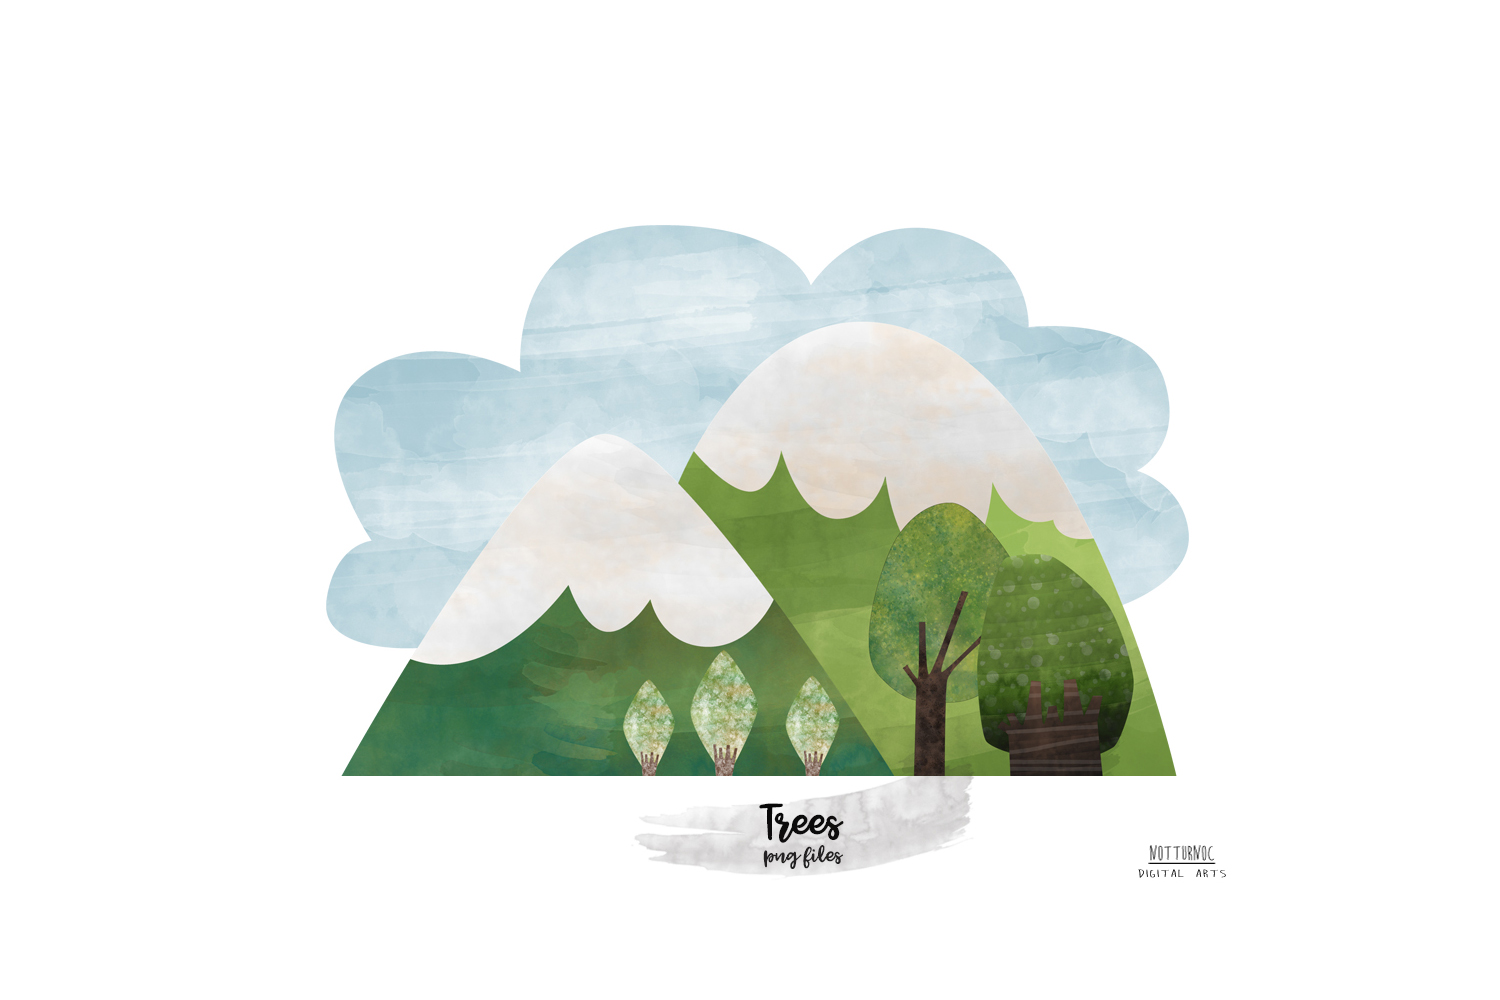 Watercolor Mountain Tree clipart. Mountain and tree clipart example image 6